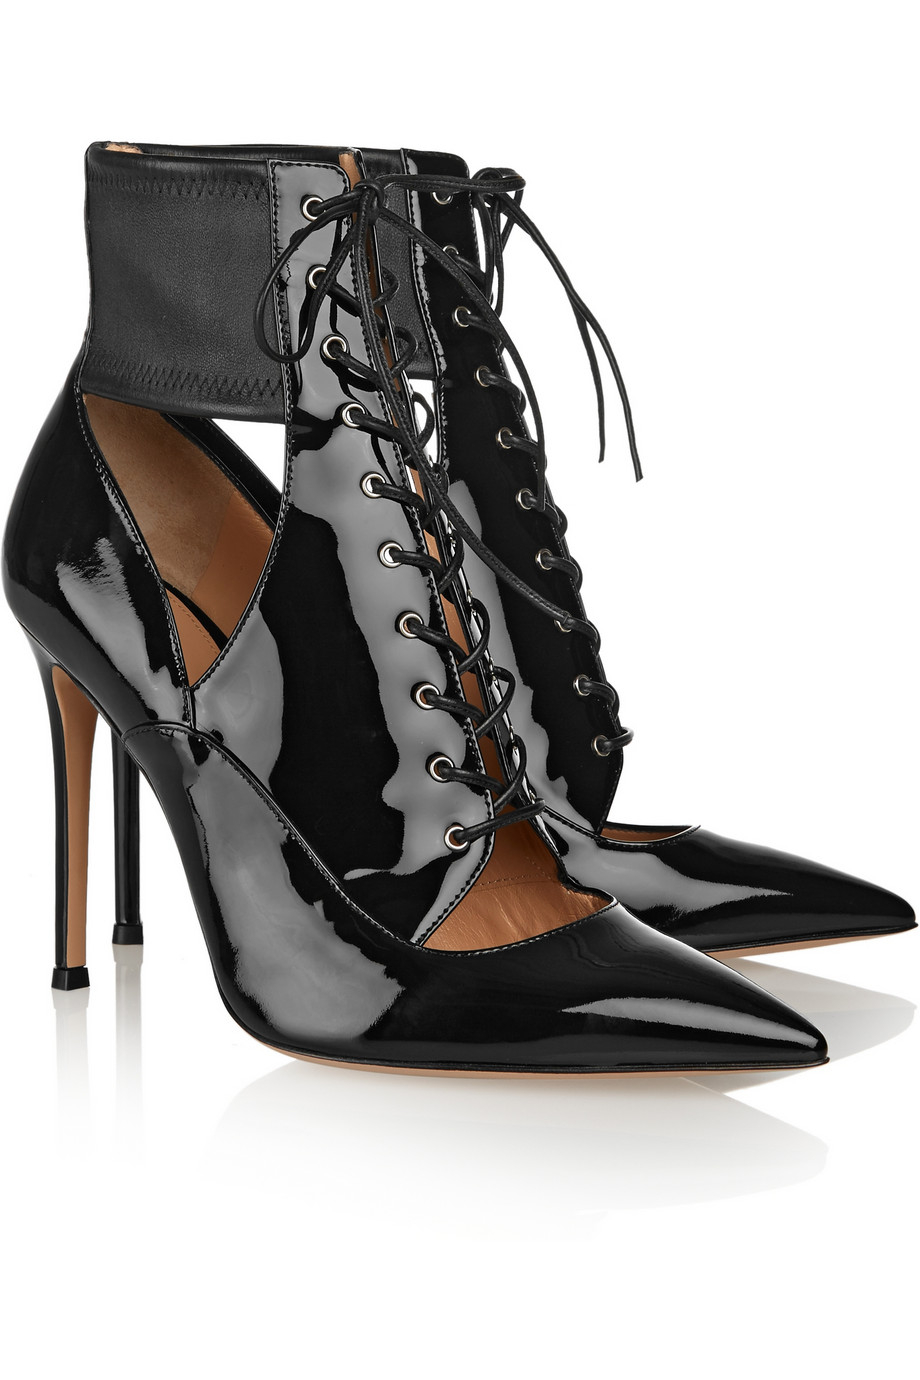 Gianvito Rossi cut out lace boots pay with visa cheap online free shipping 2014 newest T3SMyJ